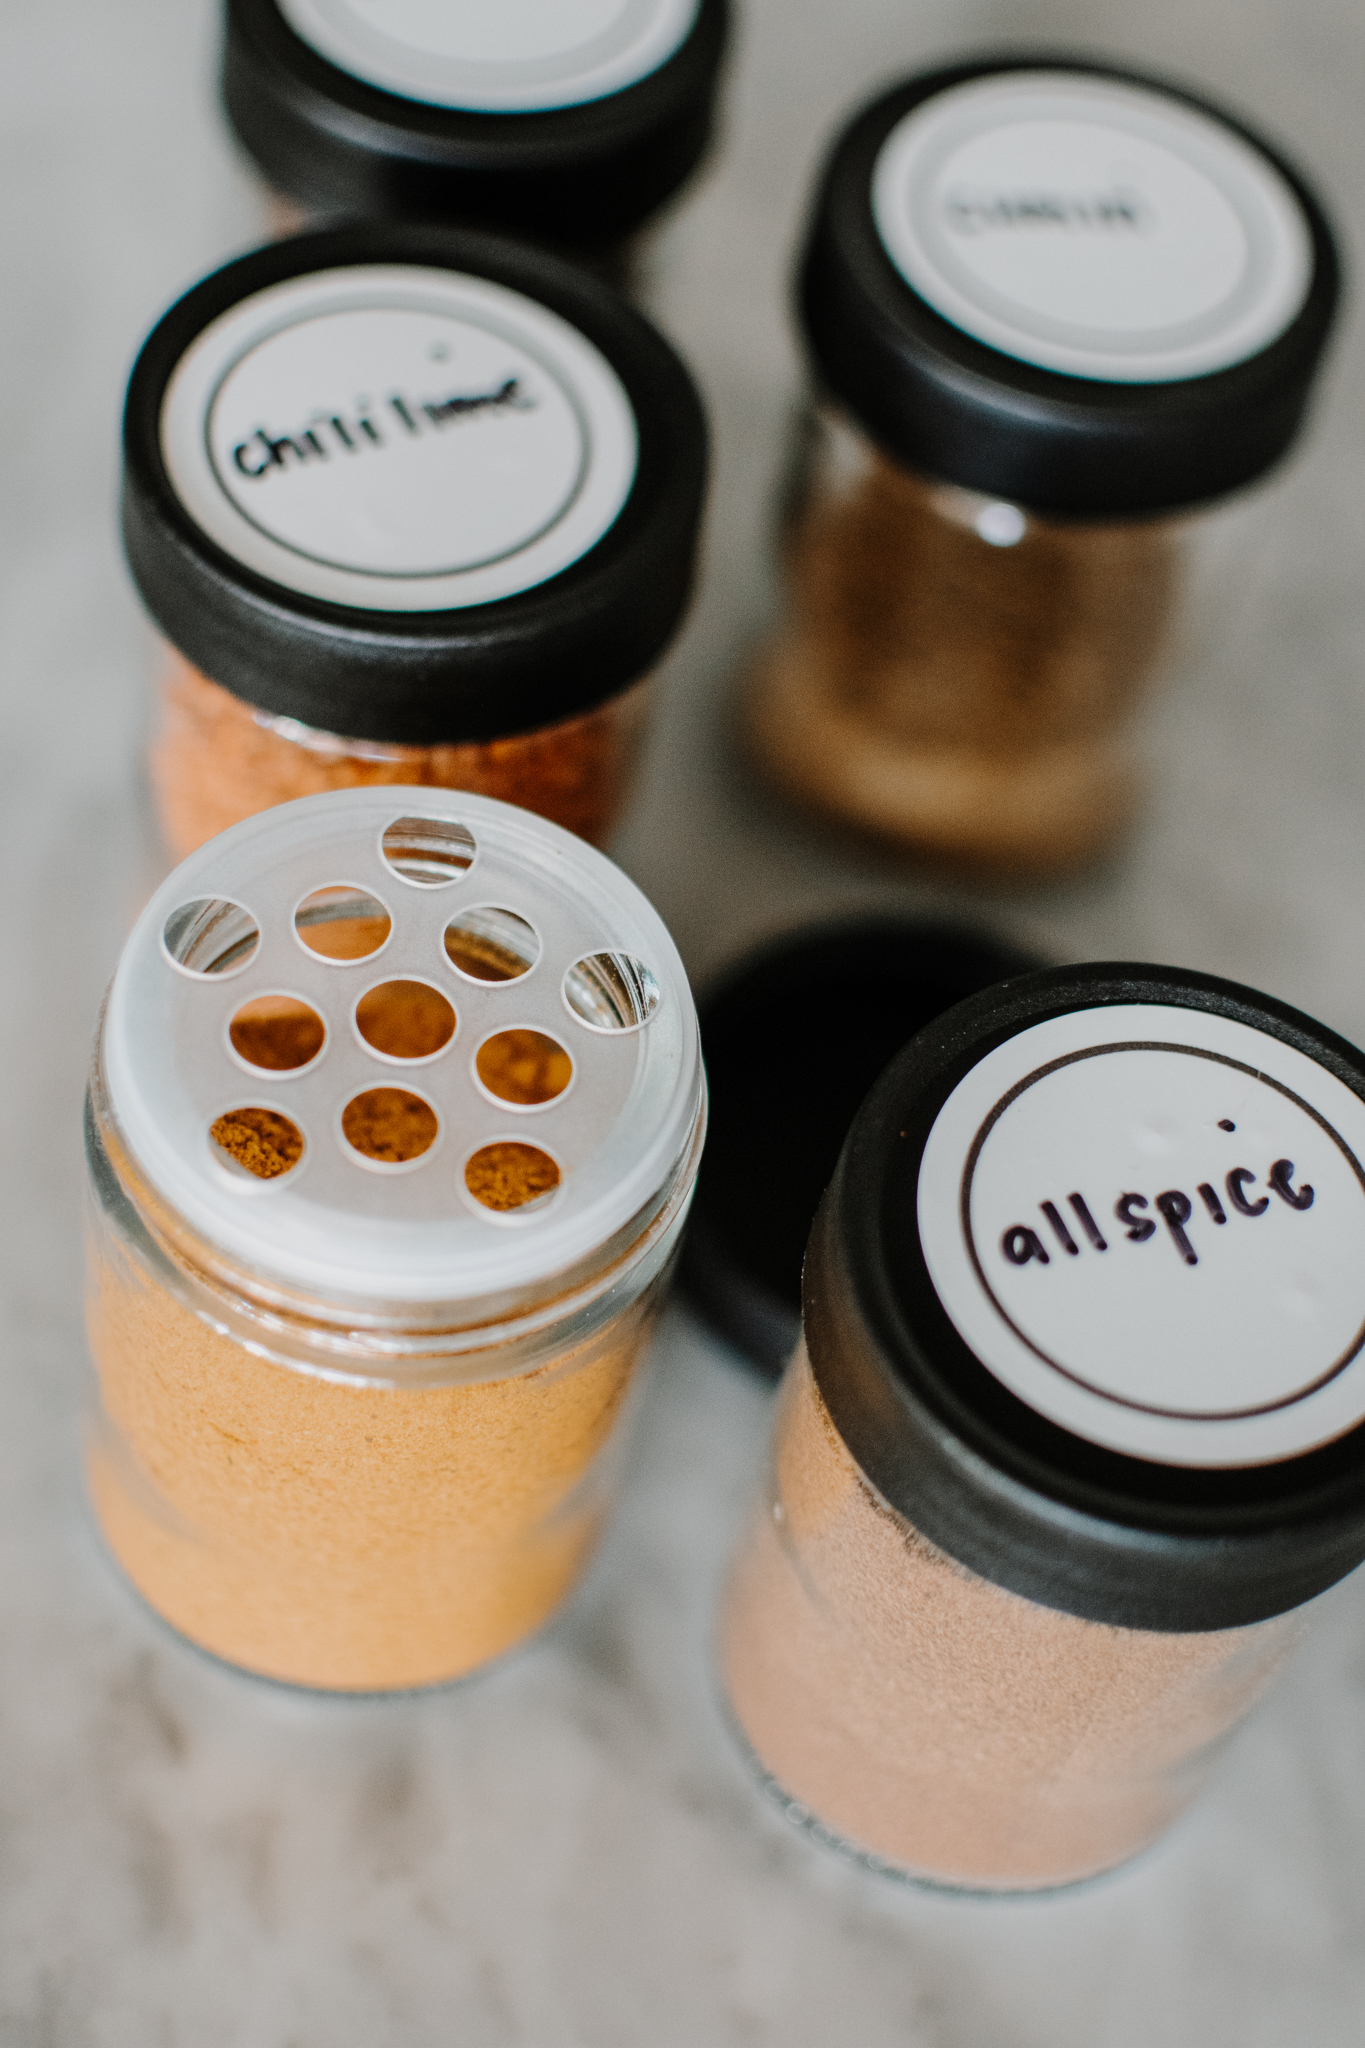 spice drawer organization - decanting spices into glass jars